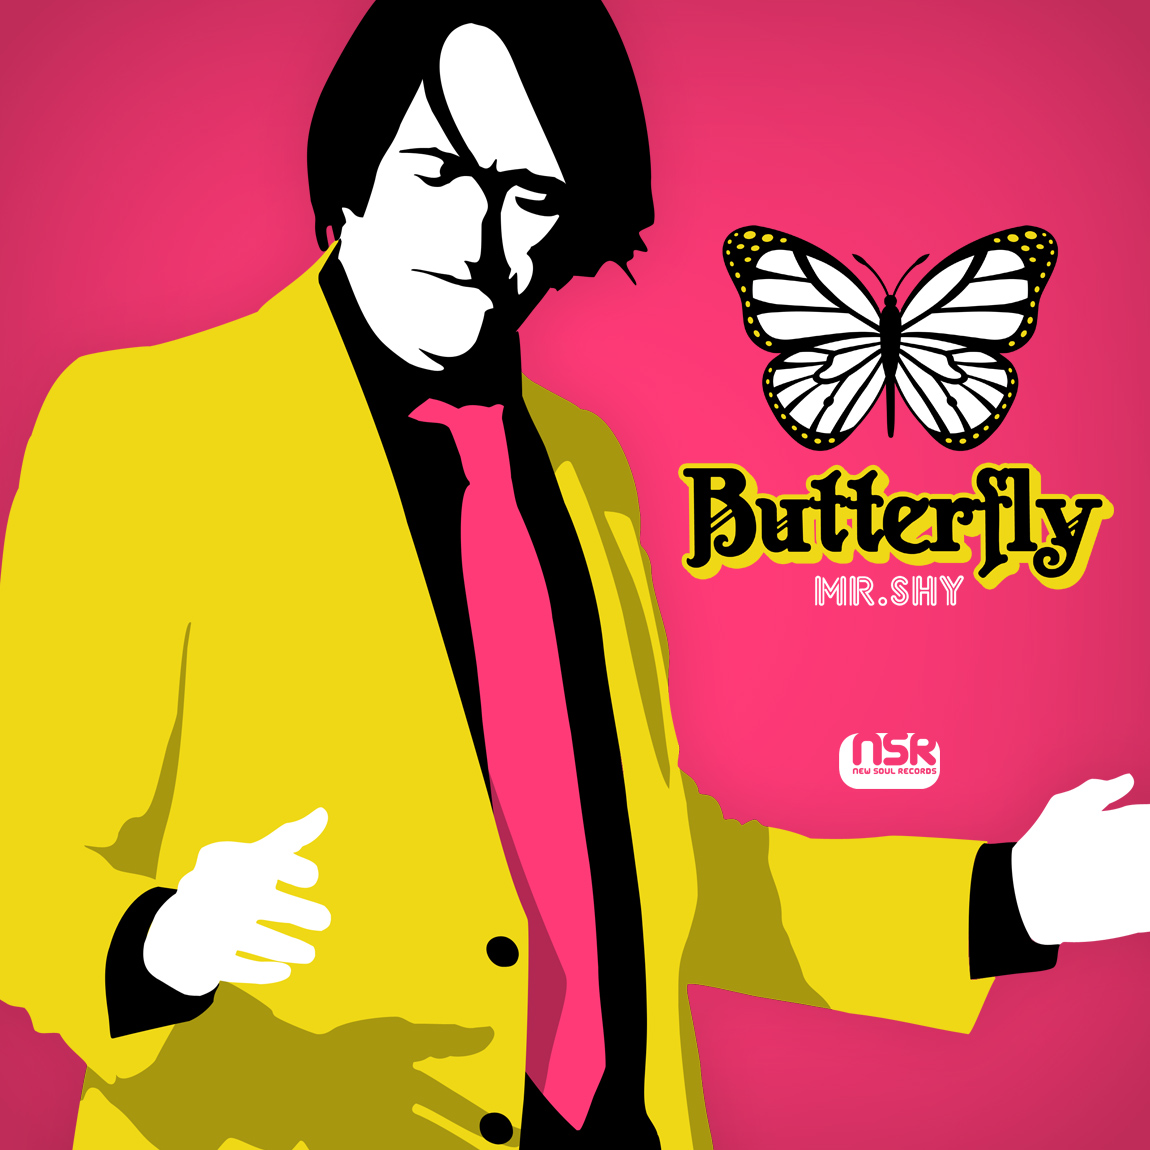 Mr. Shy - Butterfly